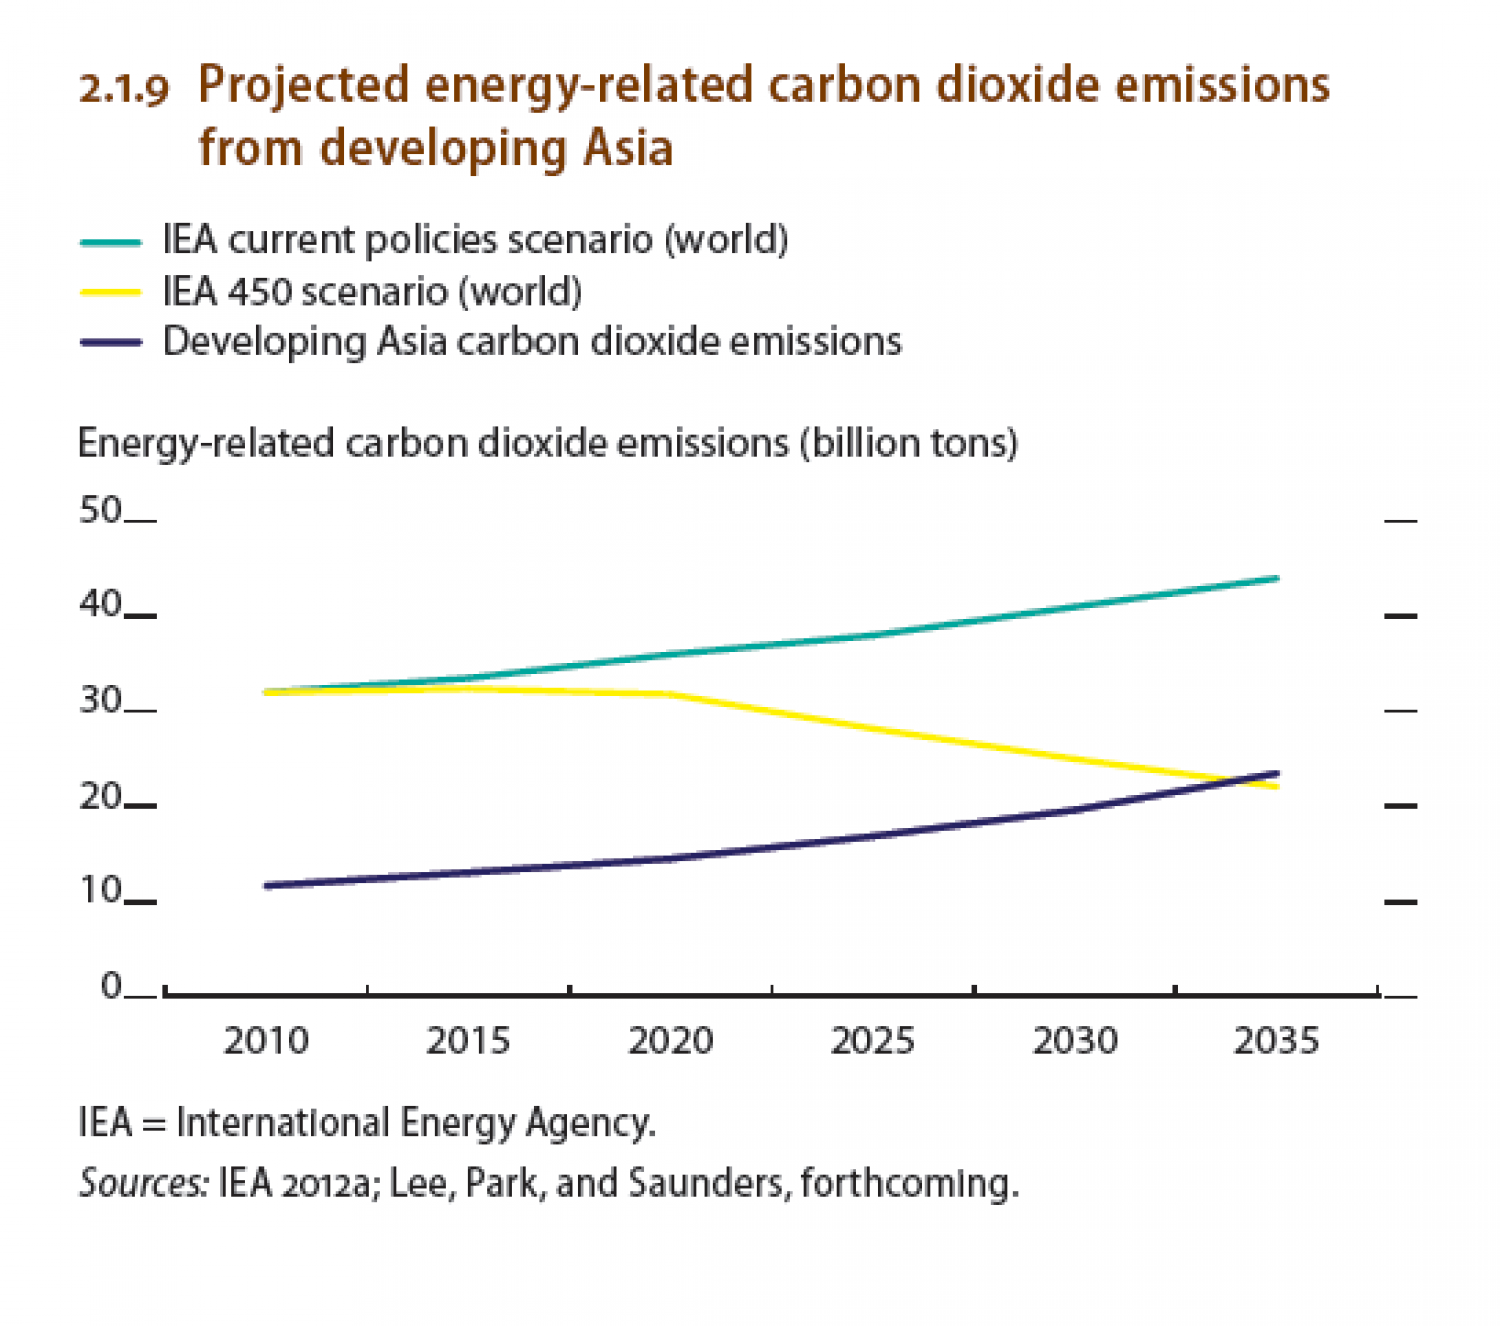 Projected energy-related carbon dioxide emissions from developing Asia Infographic